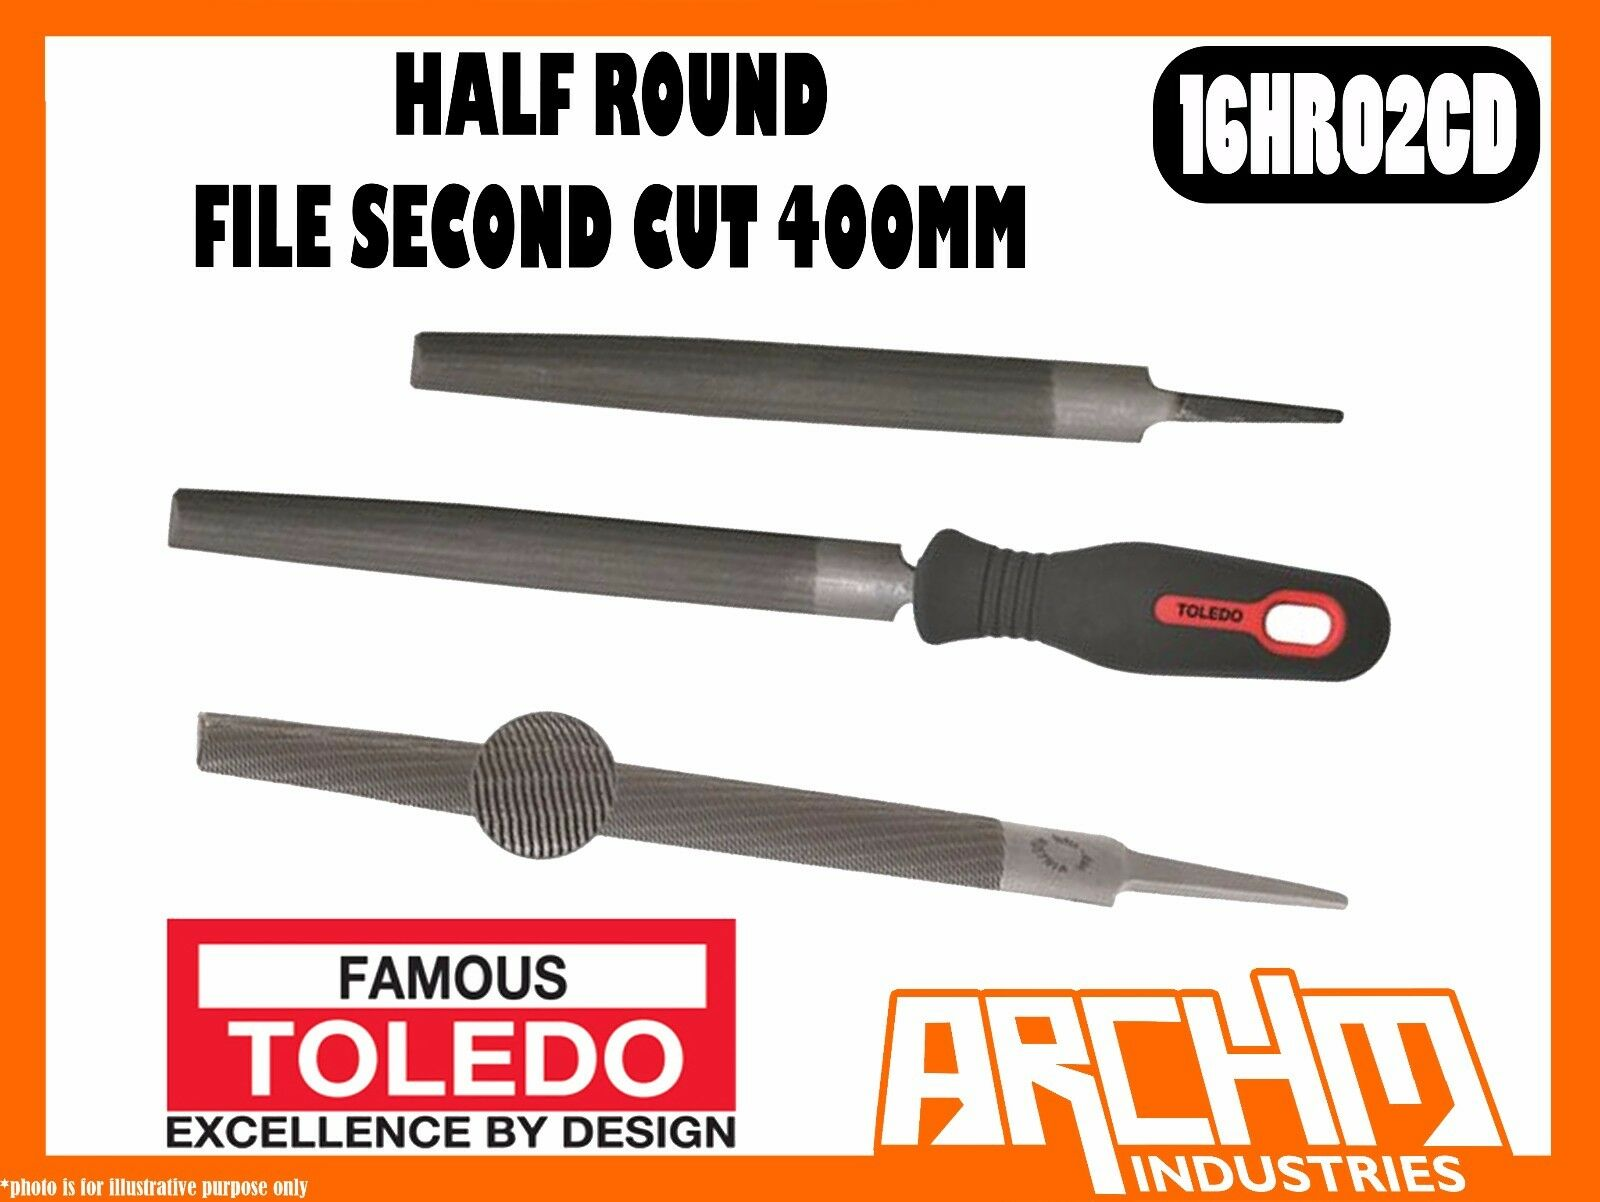 TOLEDO 16HR02CD - HALF ROUND FILE SECOND CUT - 400MM - TAPErot SPIRAL CUT METAL